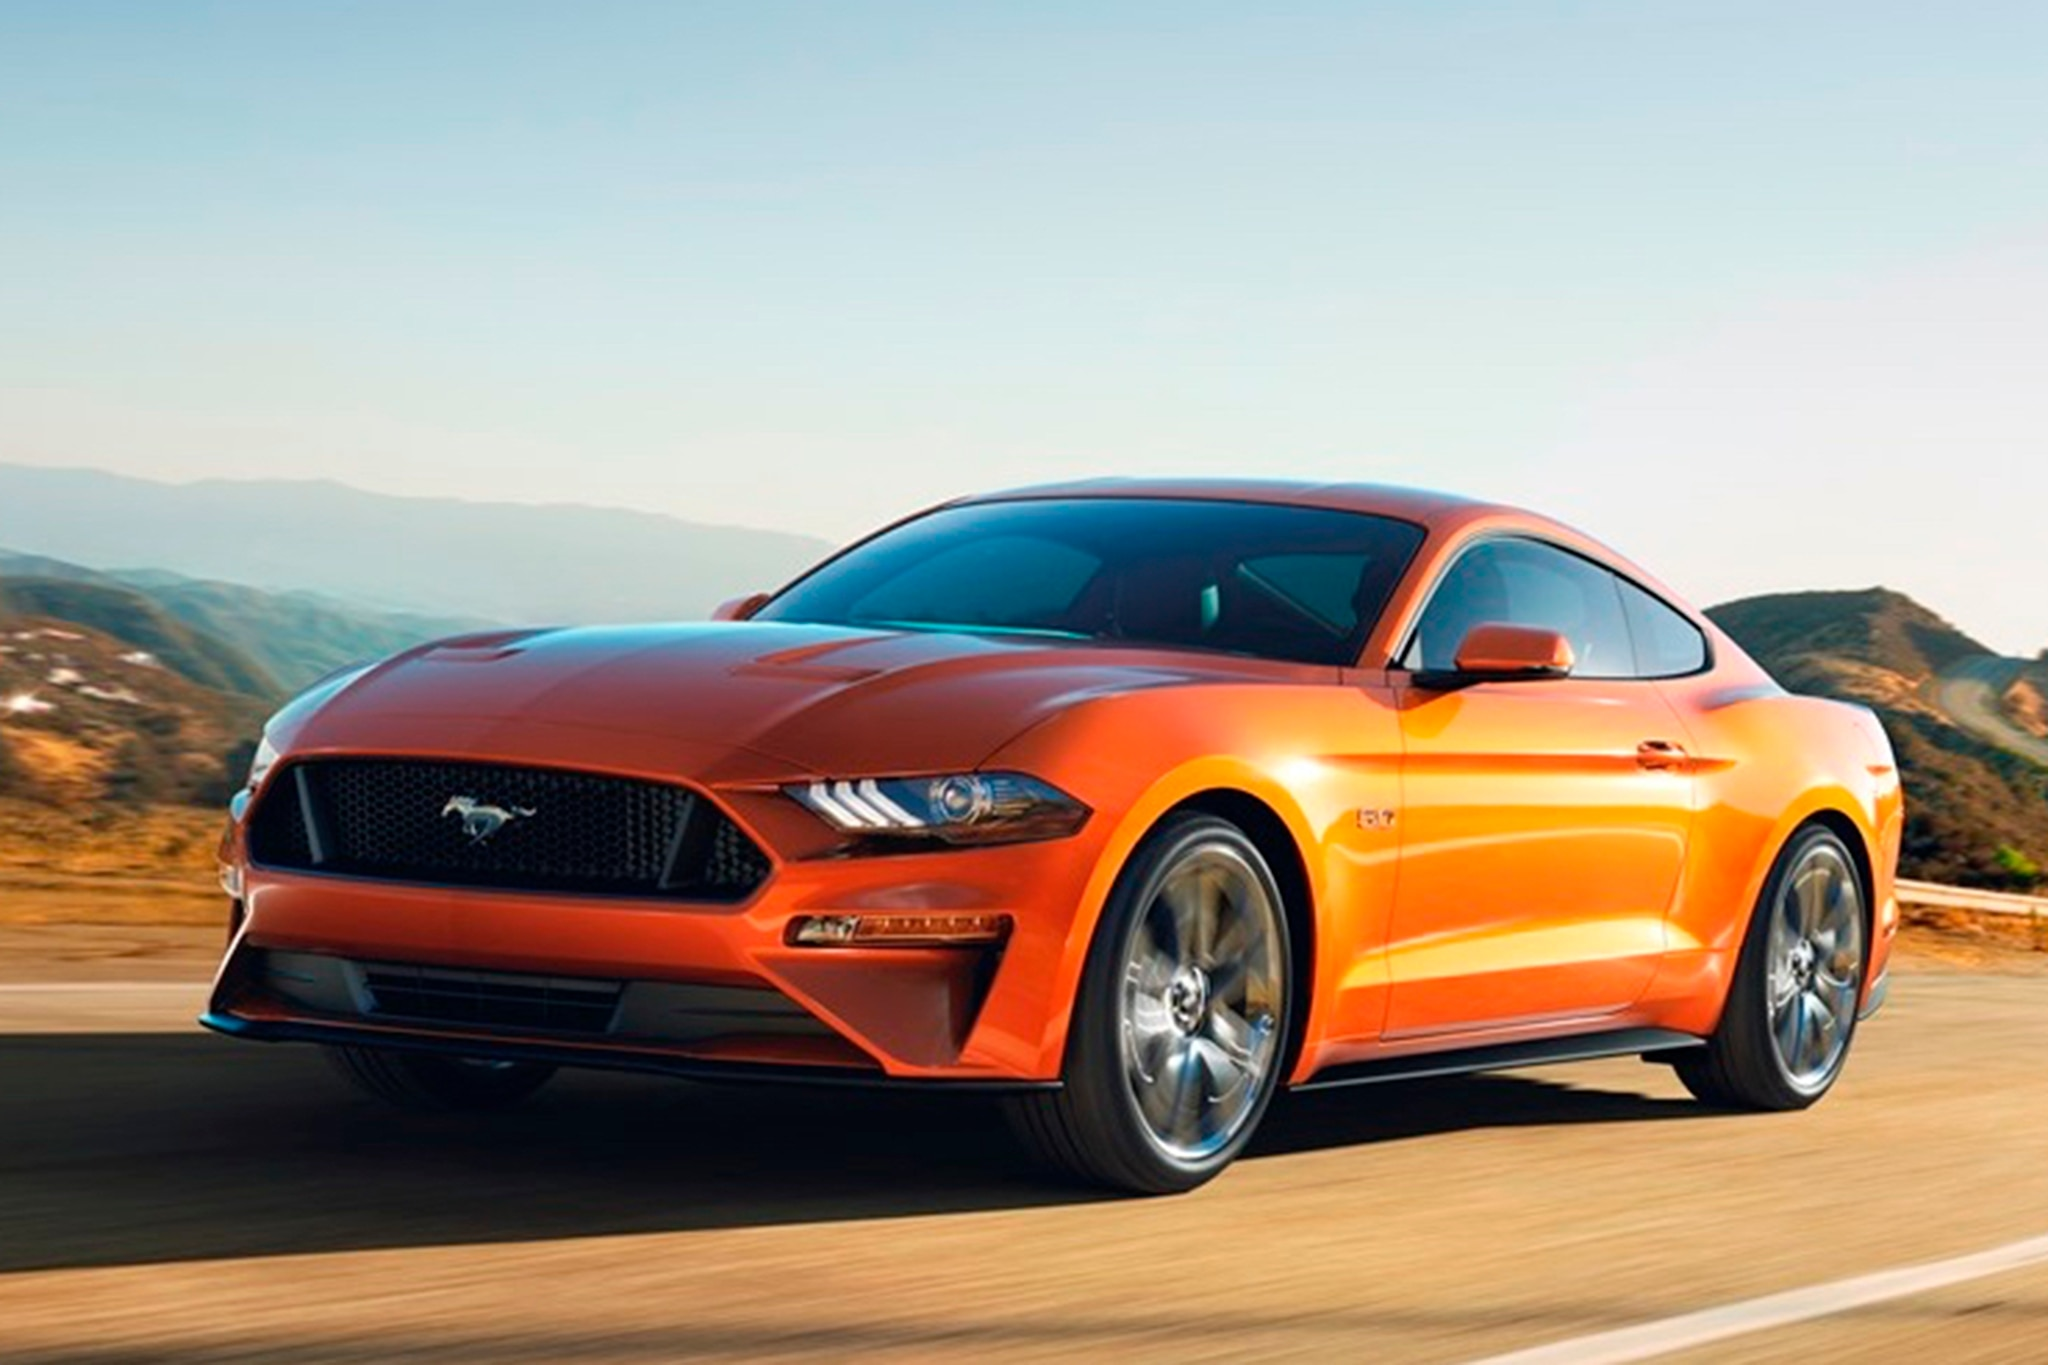 Ford Mustang GT will be quicker than a Porsche 911